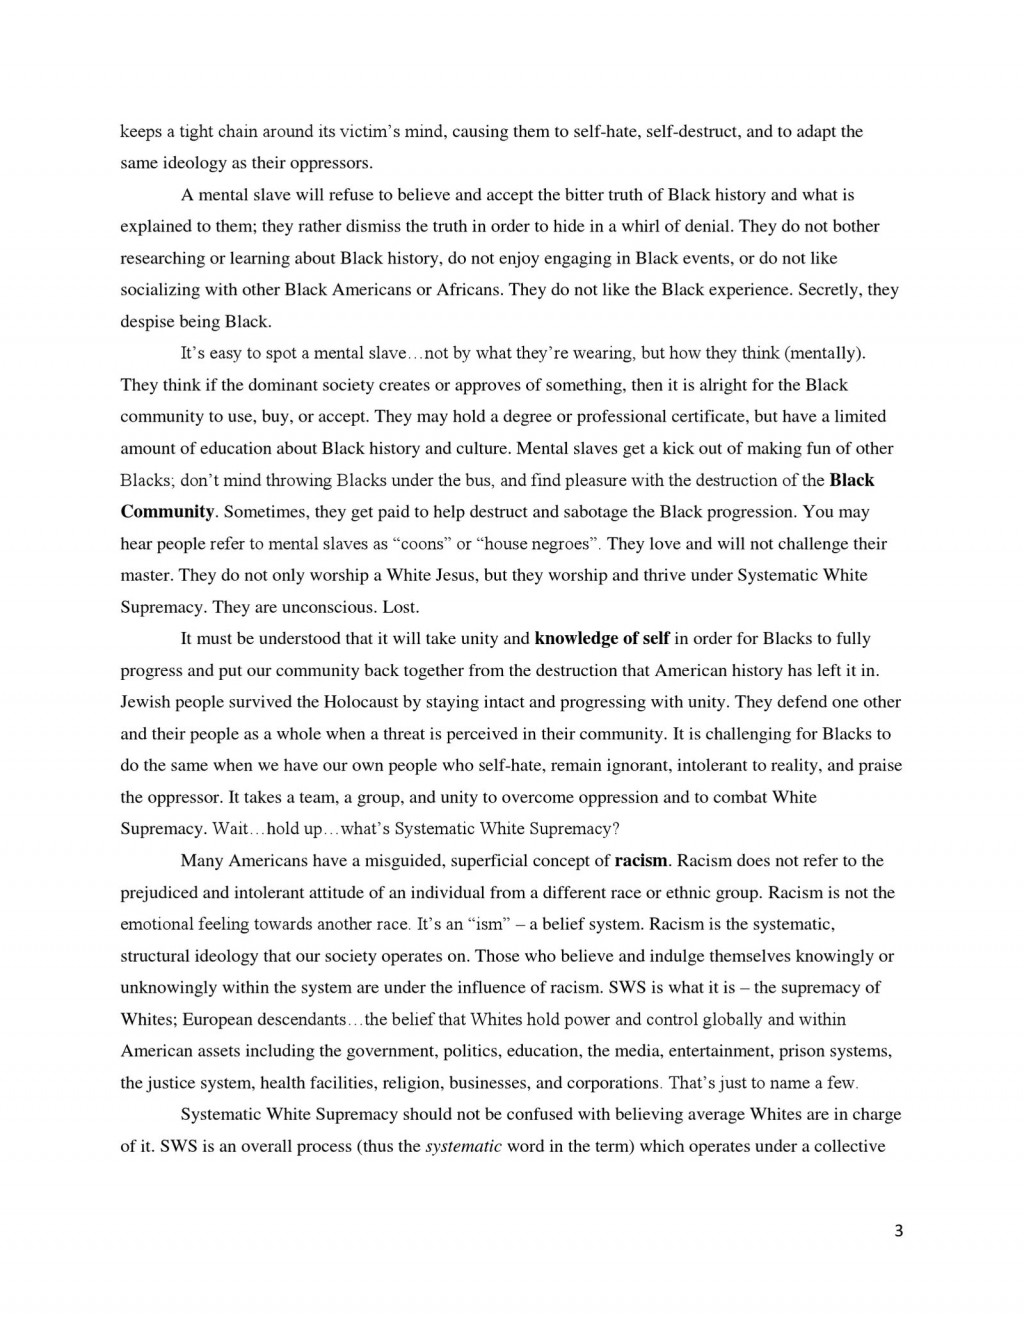 004 Essay Example Racism In America Large Striking Large